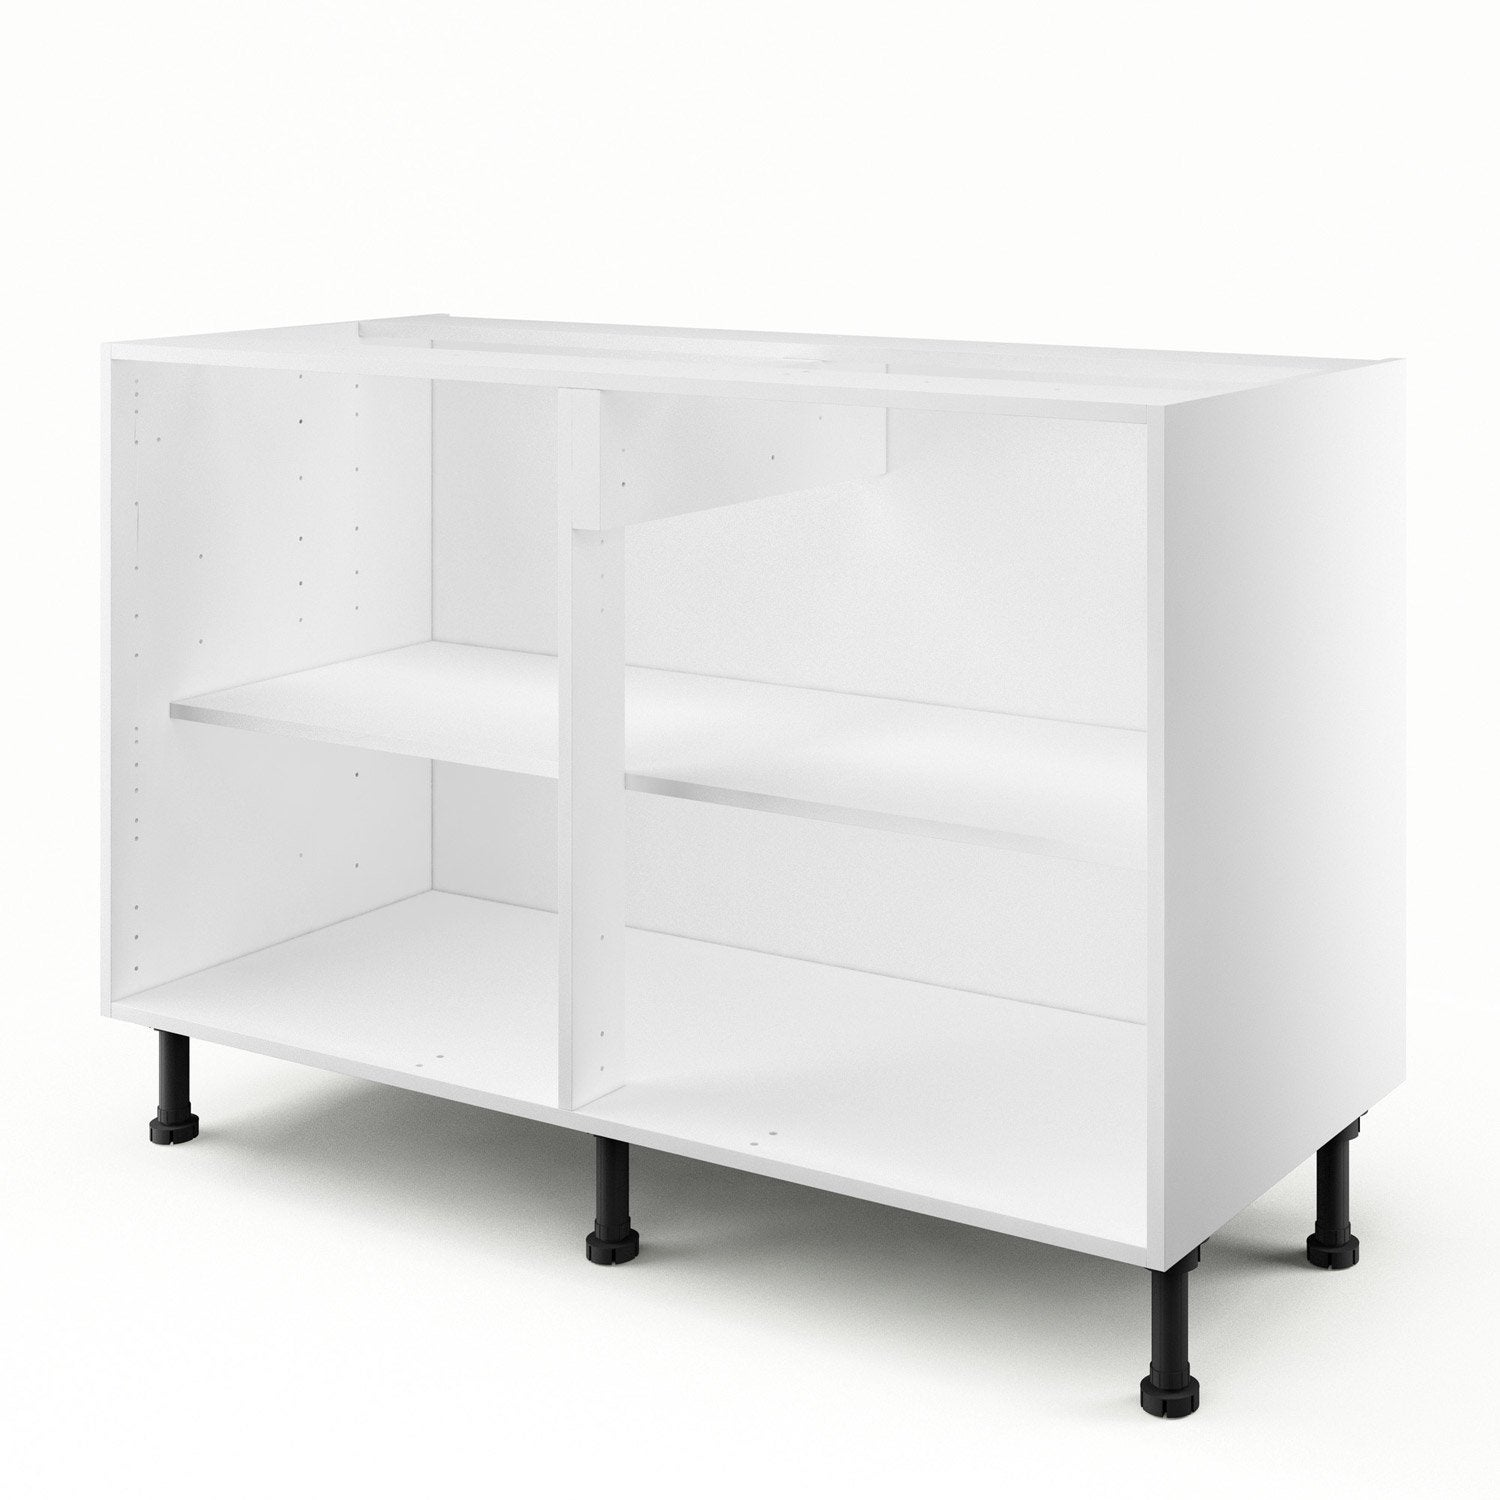 caisson de cuisine bas b120 delinia blanc x x cm leroy merlin. Black Bedroom Furniture Sets. Home Design Ideas